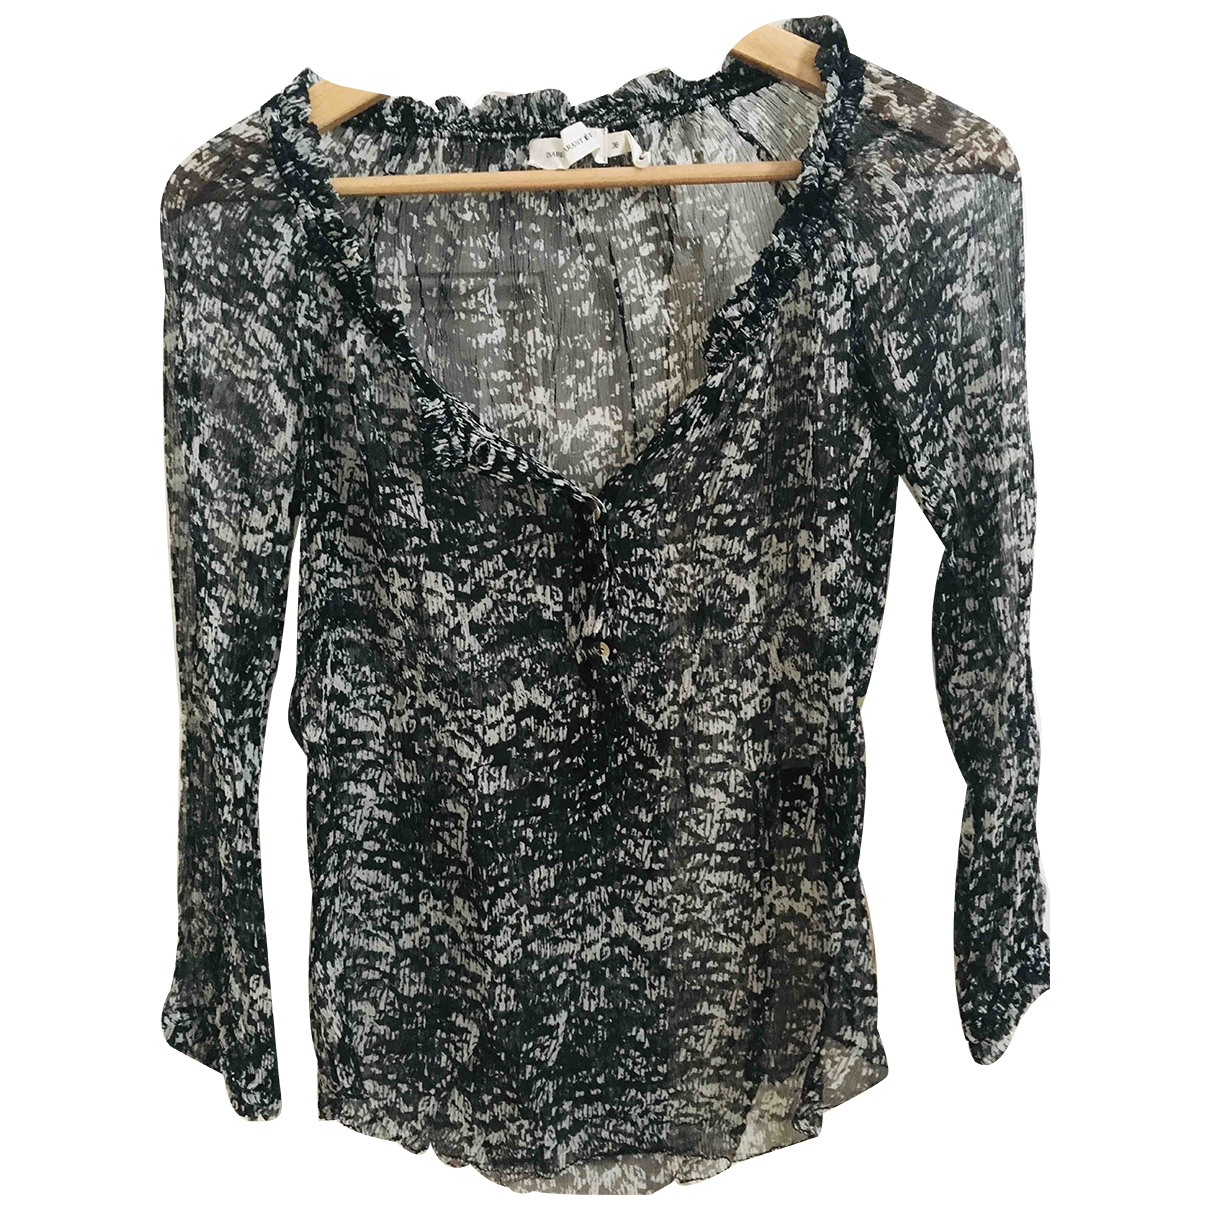 Isabel Marant Etoile \N Black Silk  top for Women 36 FR